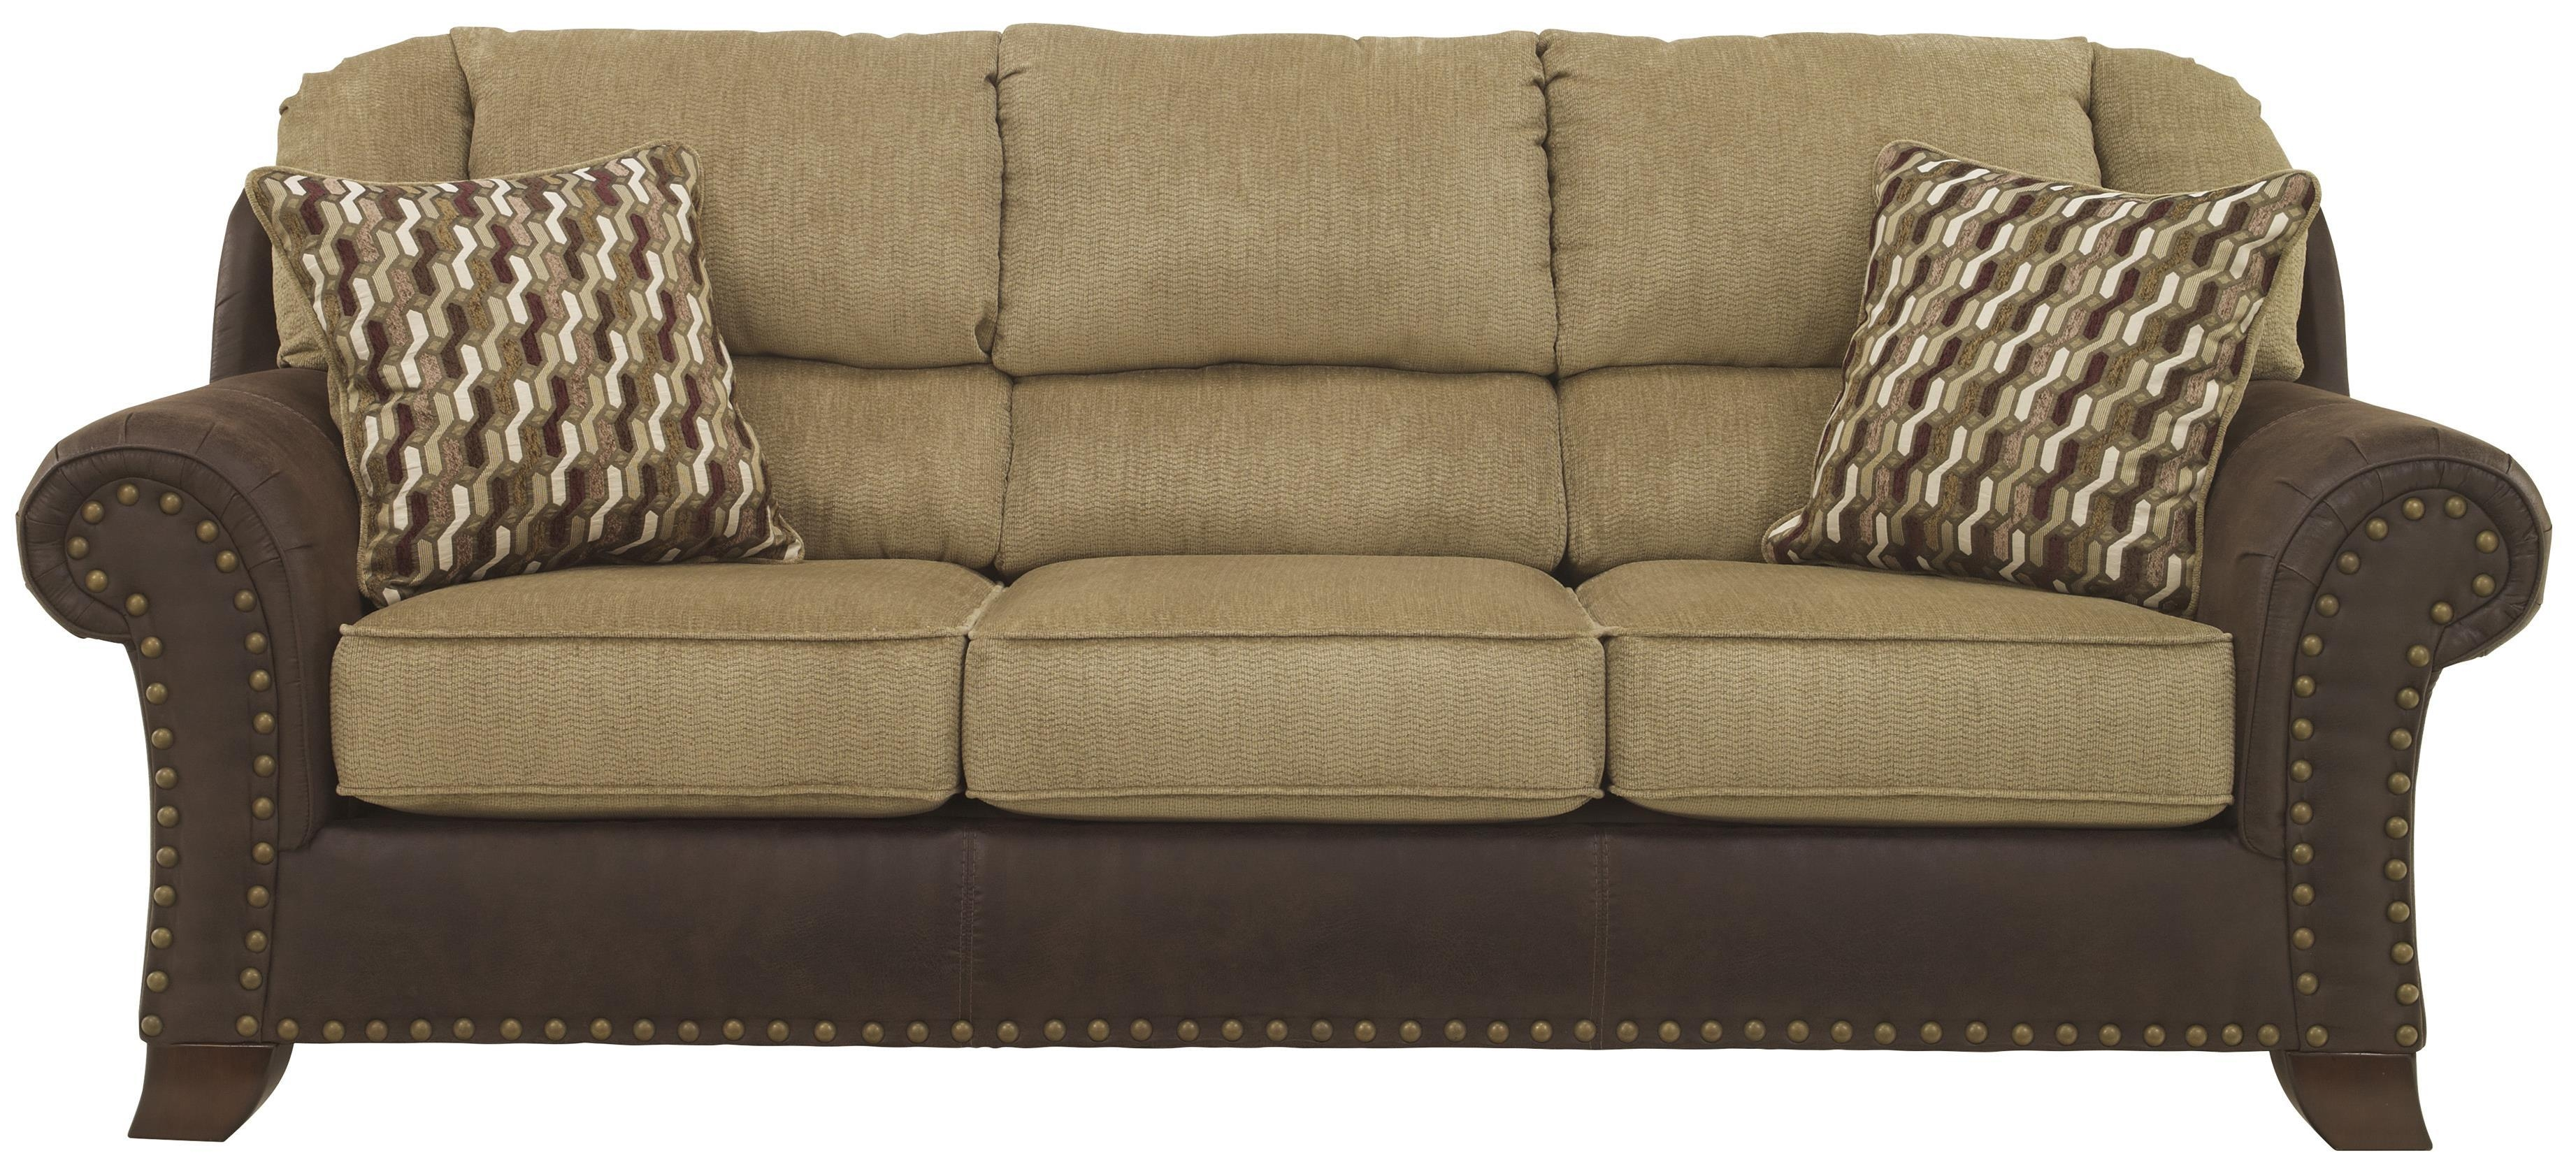 Two Tone Sofa With Chenille Fabric/faux Leather Upholstery Within Upholstery Fabric Sofas (View 6 of 22)